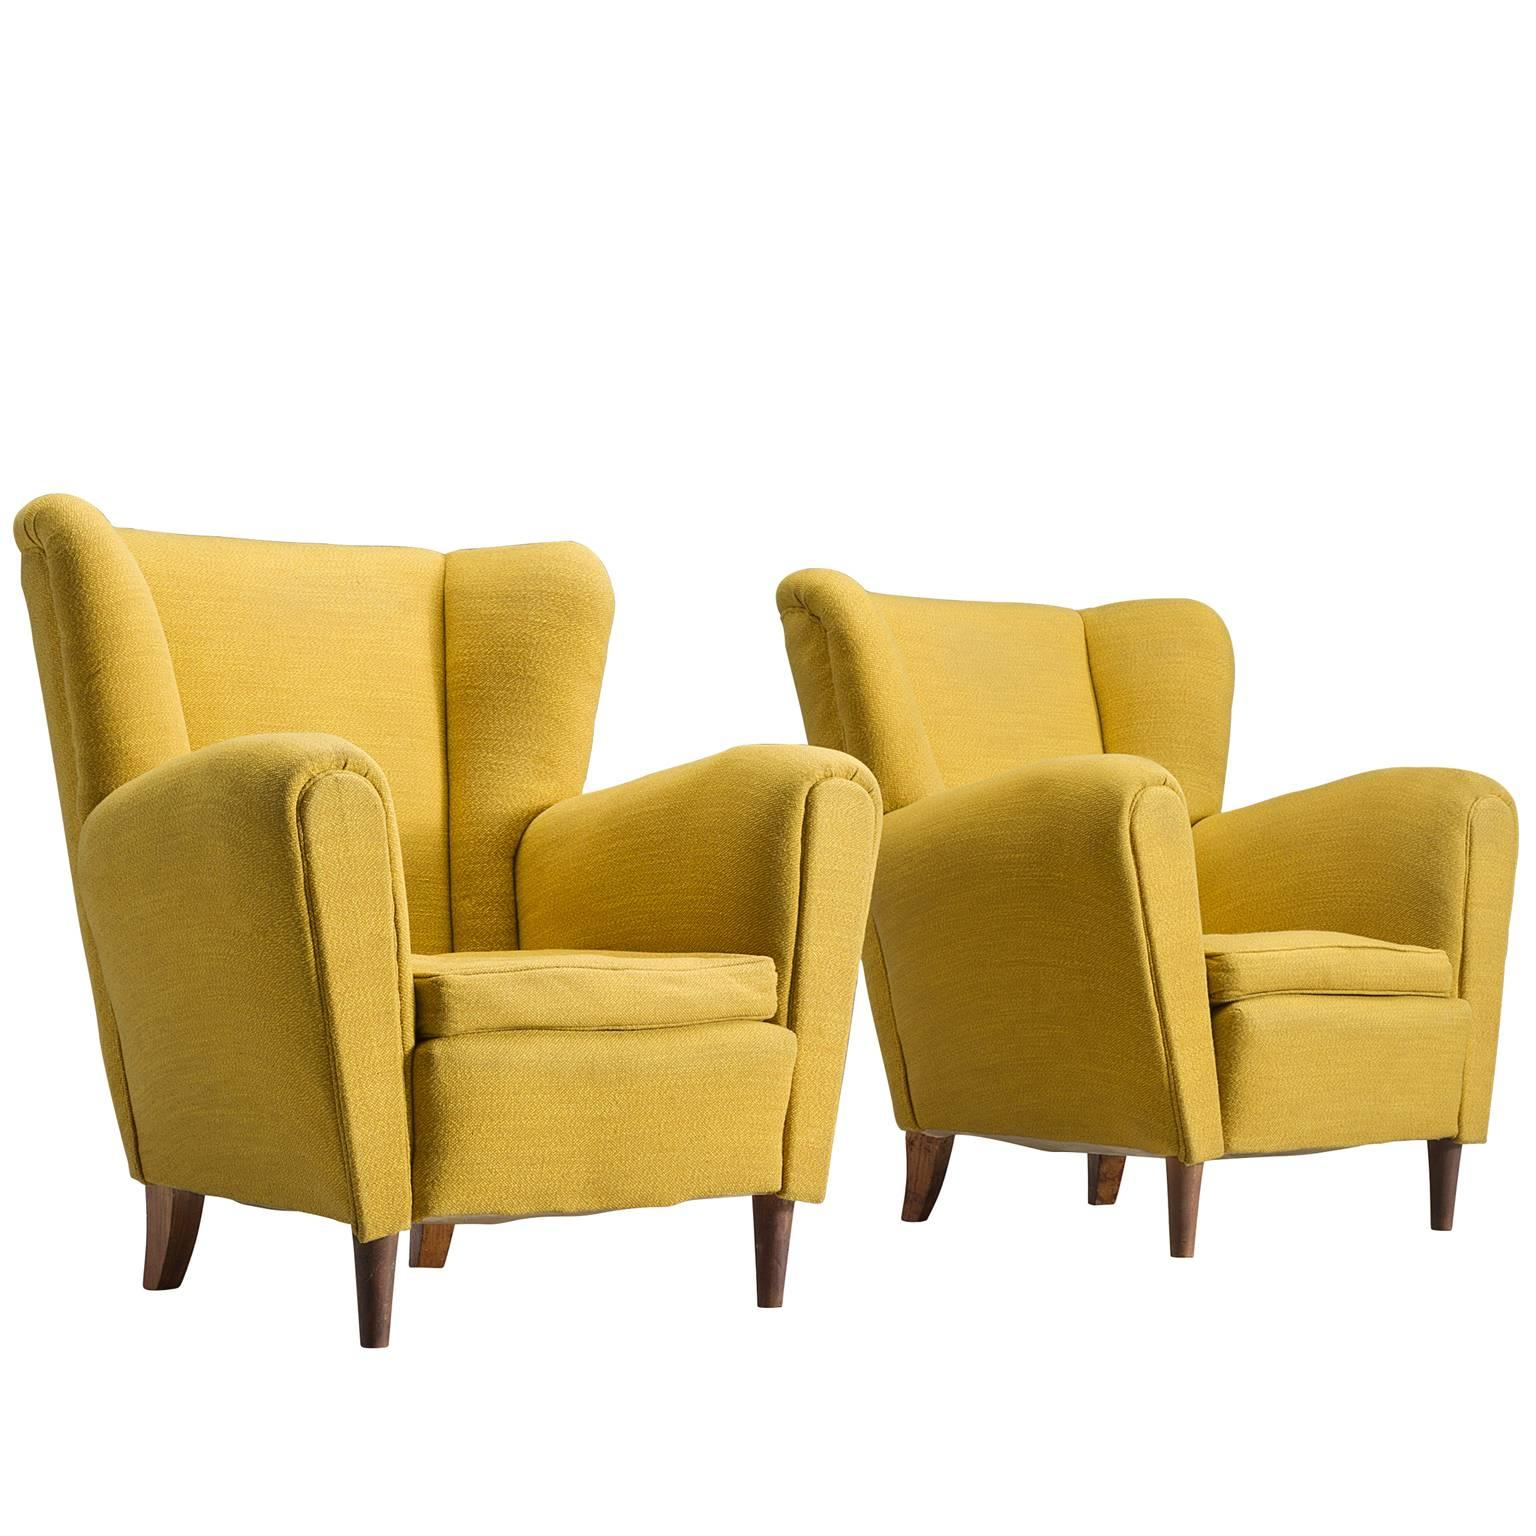 Italian Bright Yellow Lounge Chairs 1950s For Sale at 1stdibs